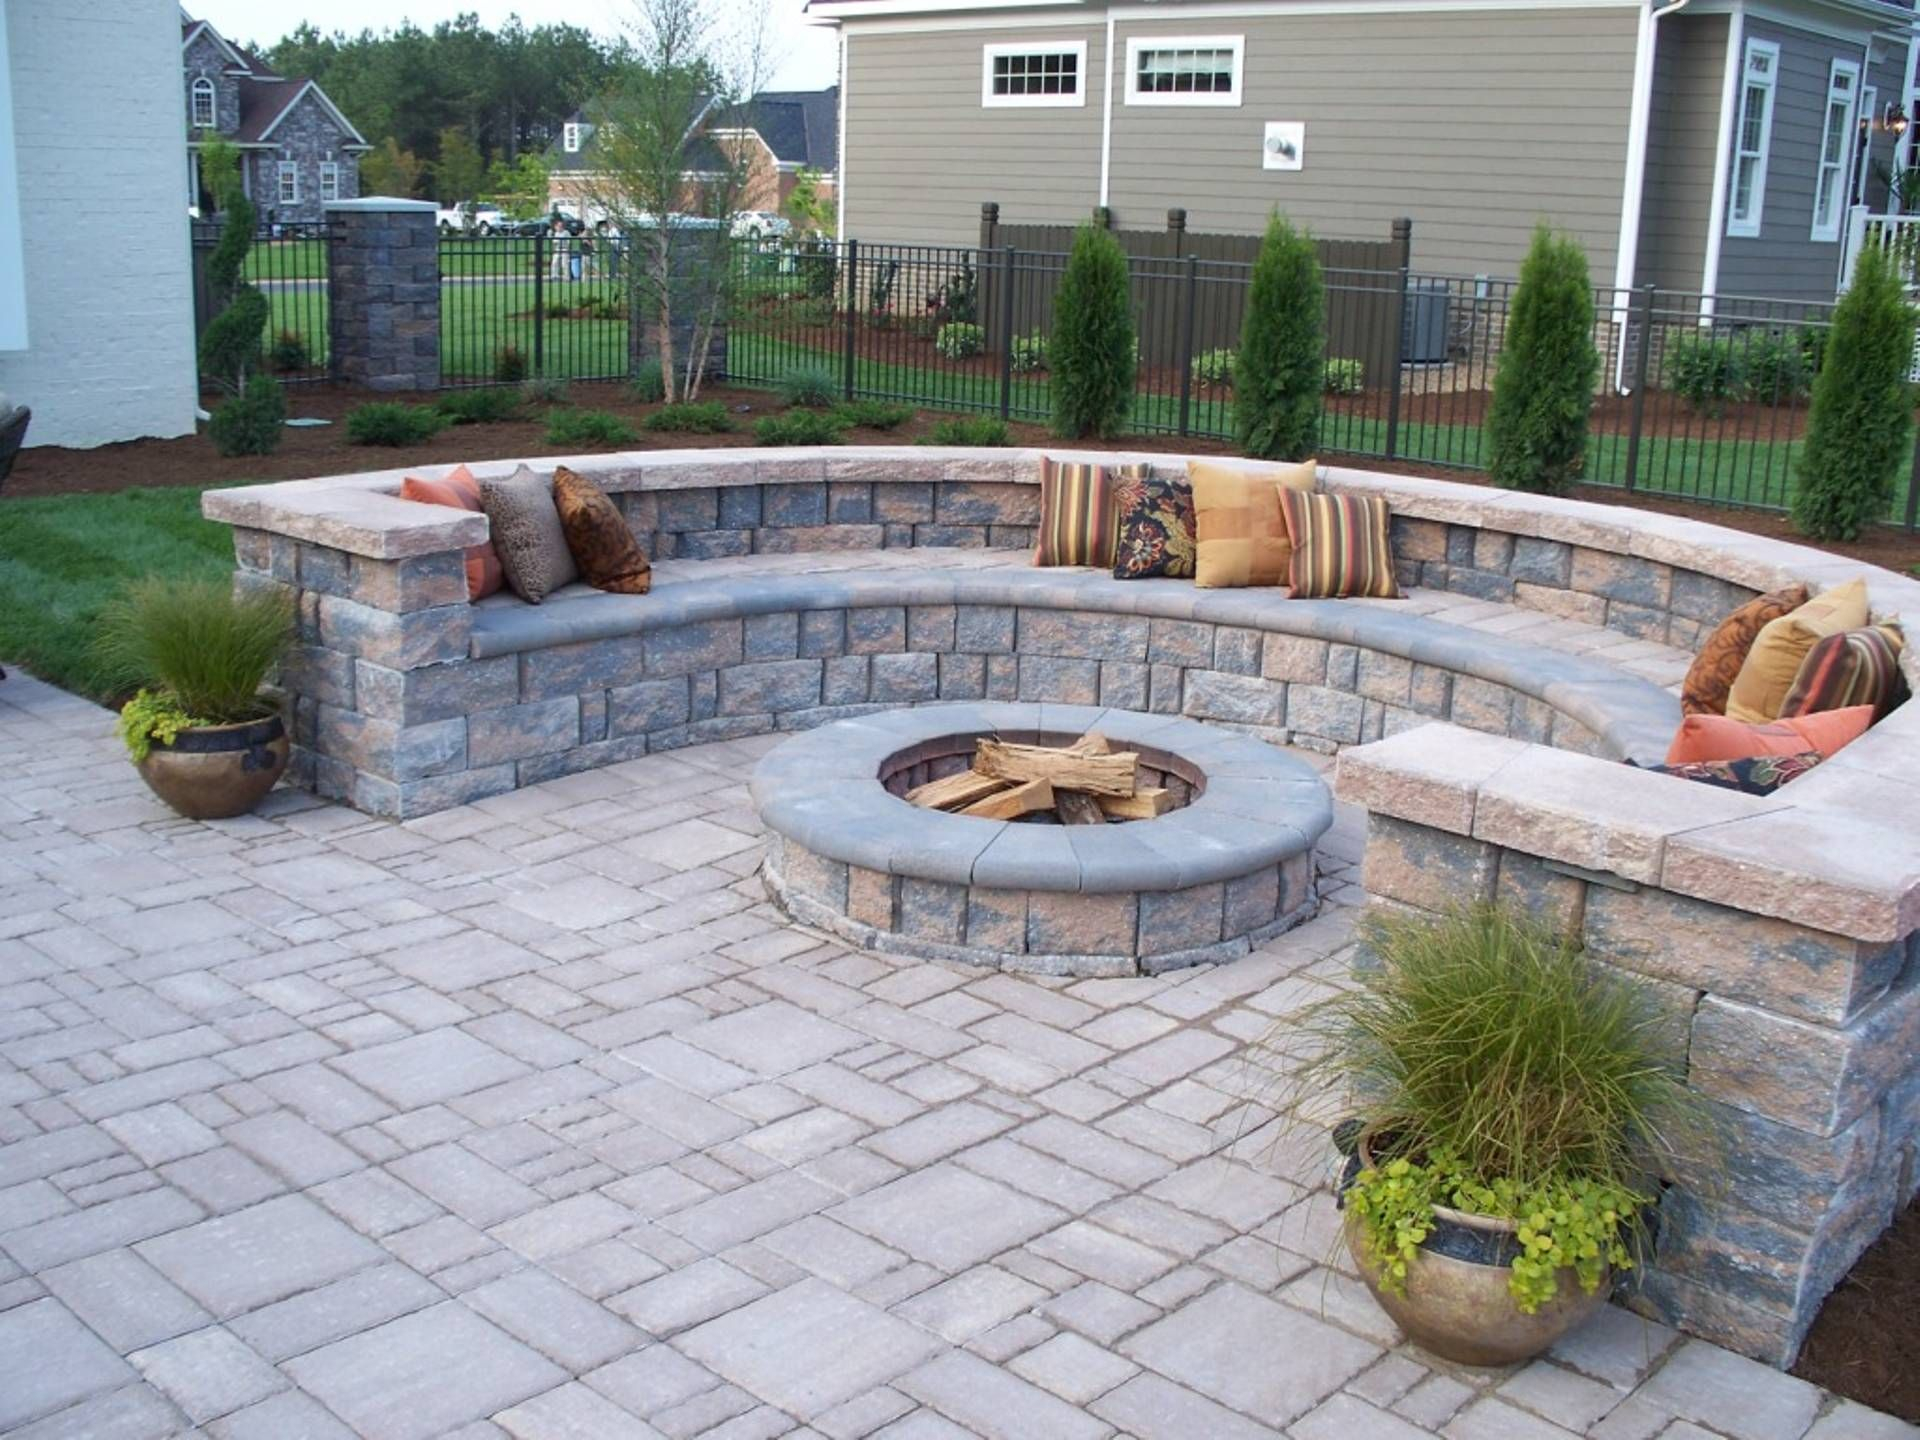 Backyard Paver Patio Ideas Install Design Idea And Decor Best pertaining to Stone Patio Ideas Backyard